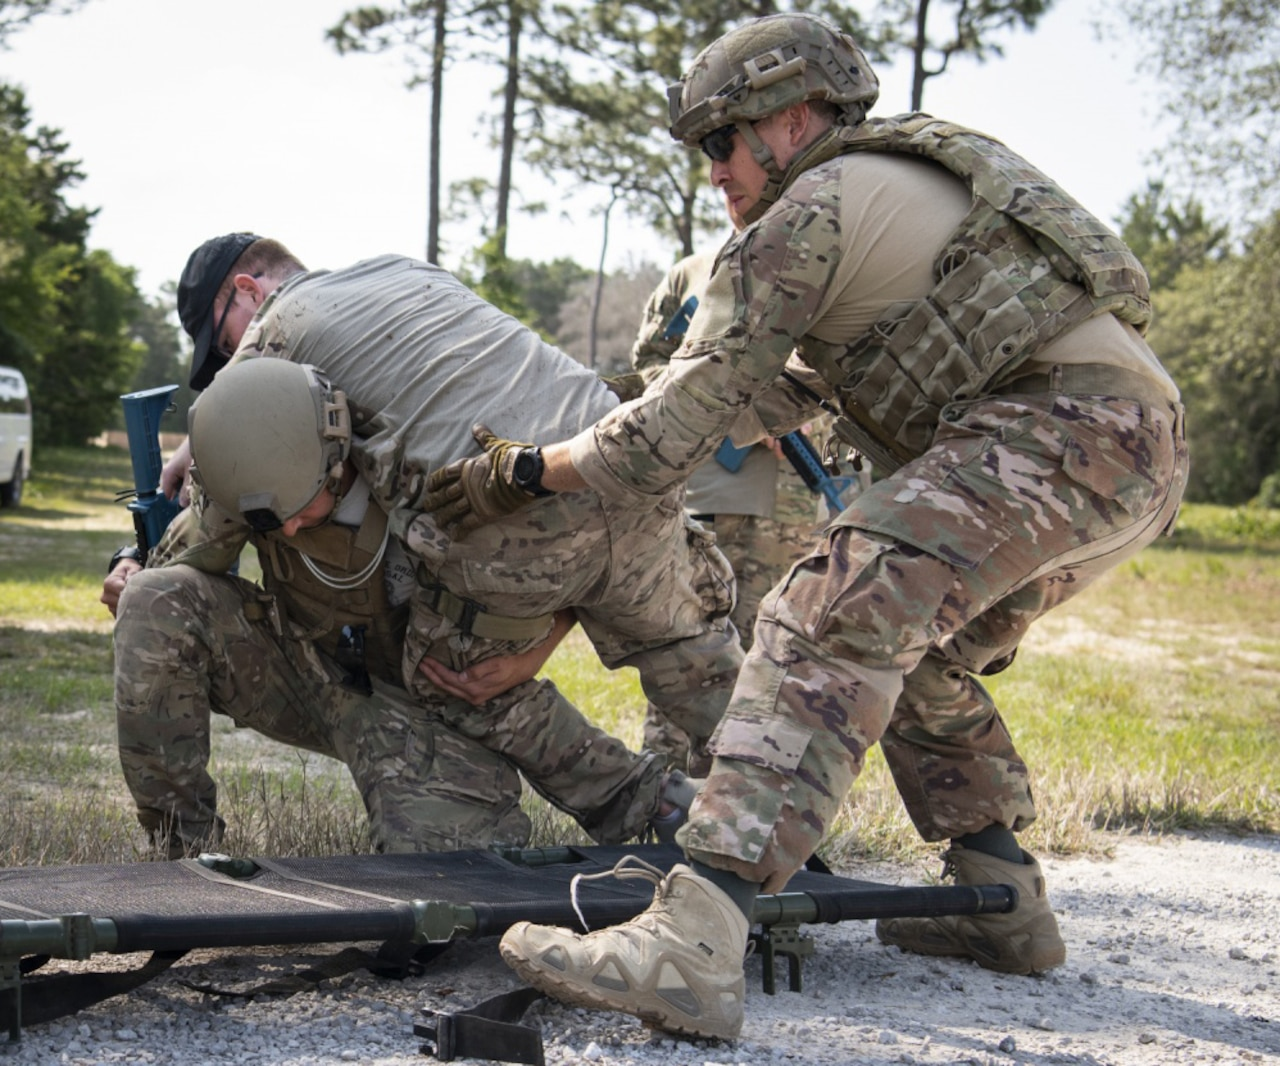 Service members help a simulated victim during an exercise.